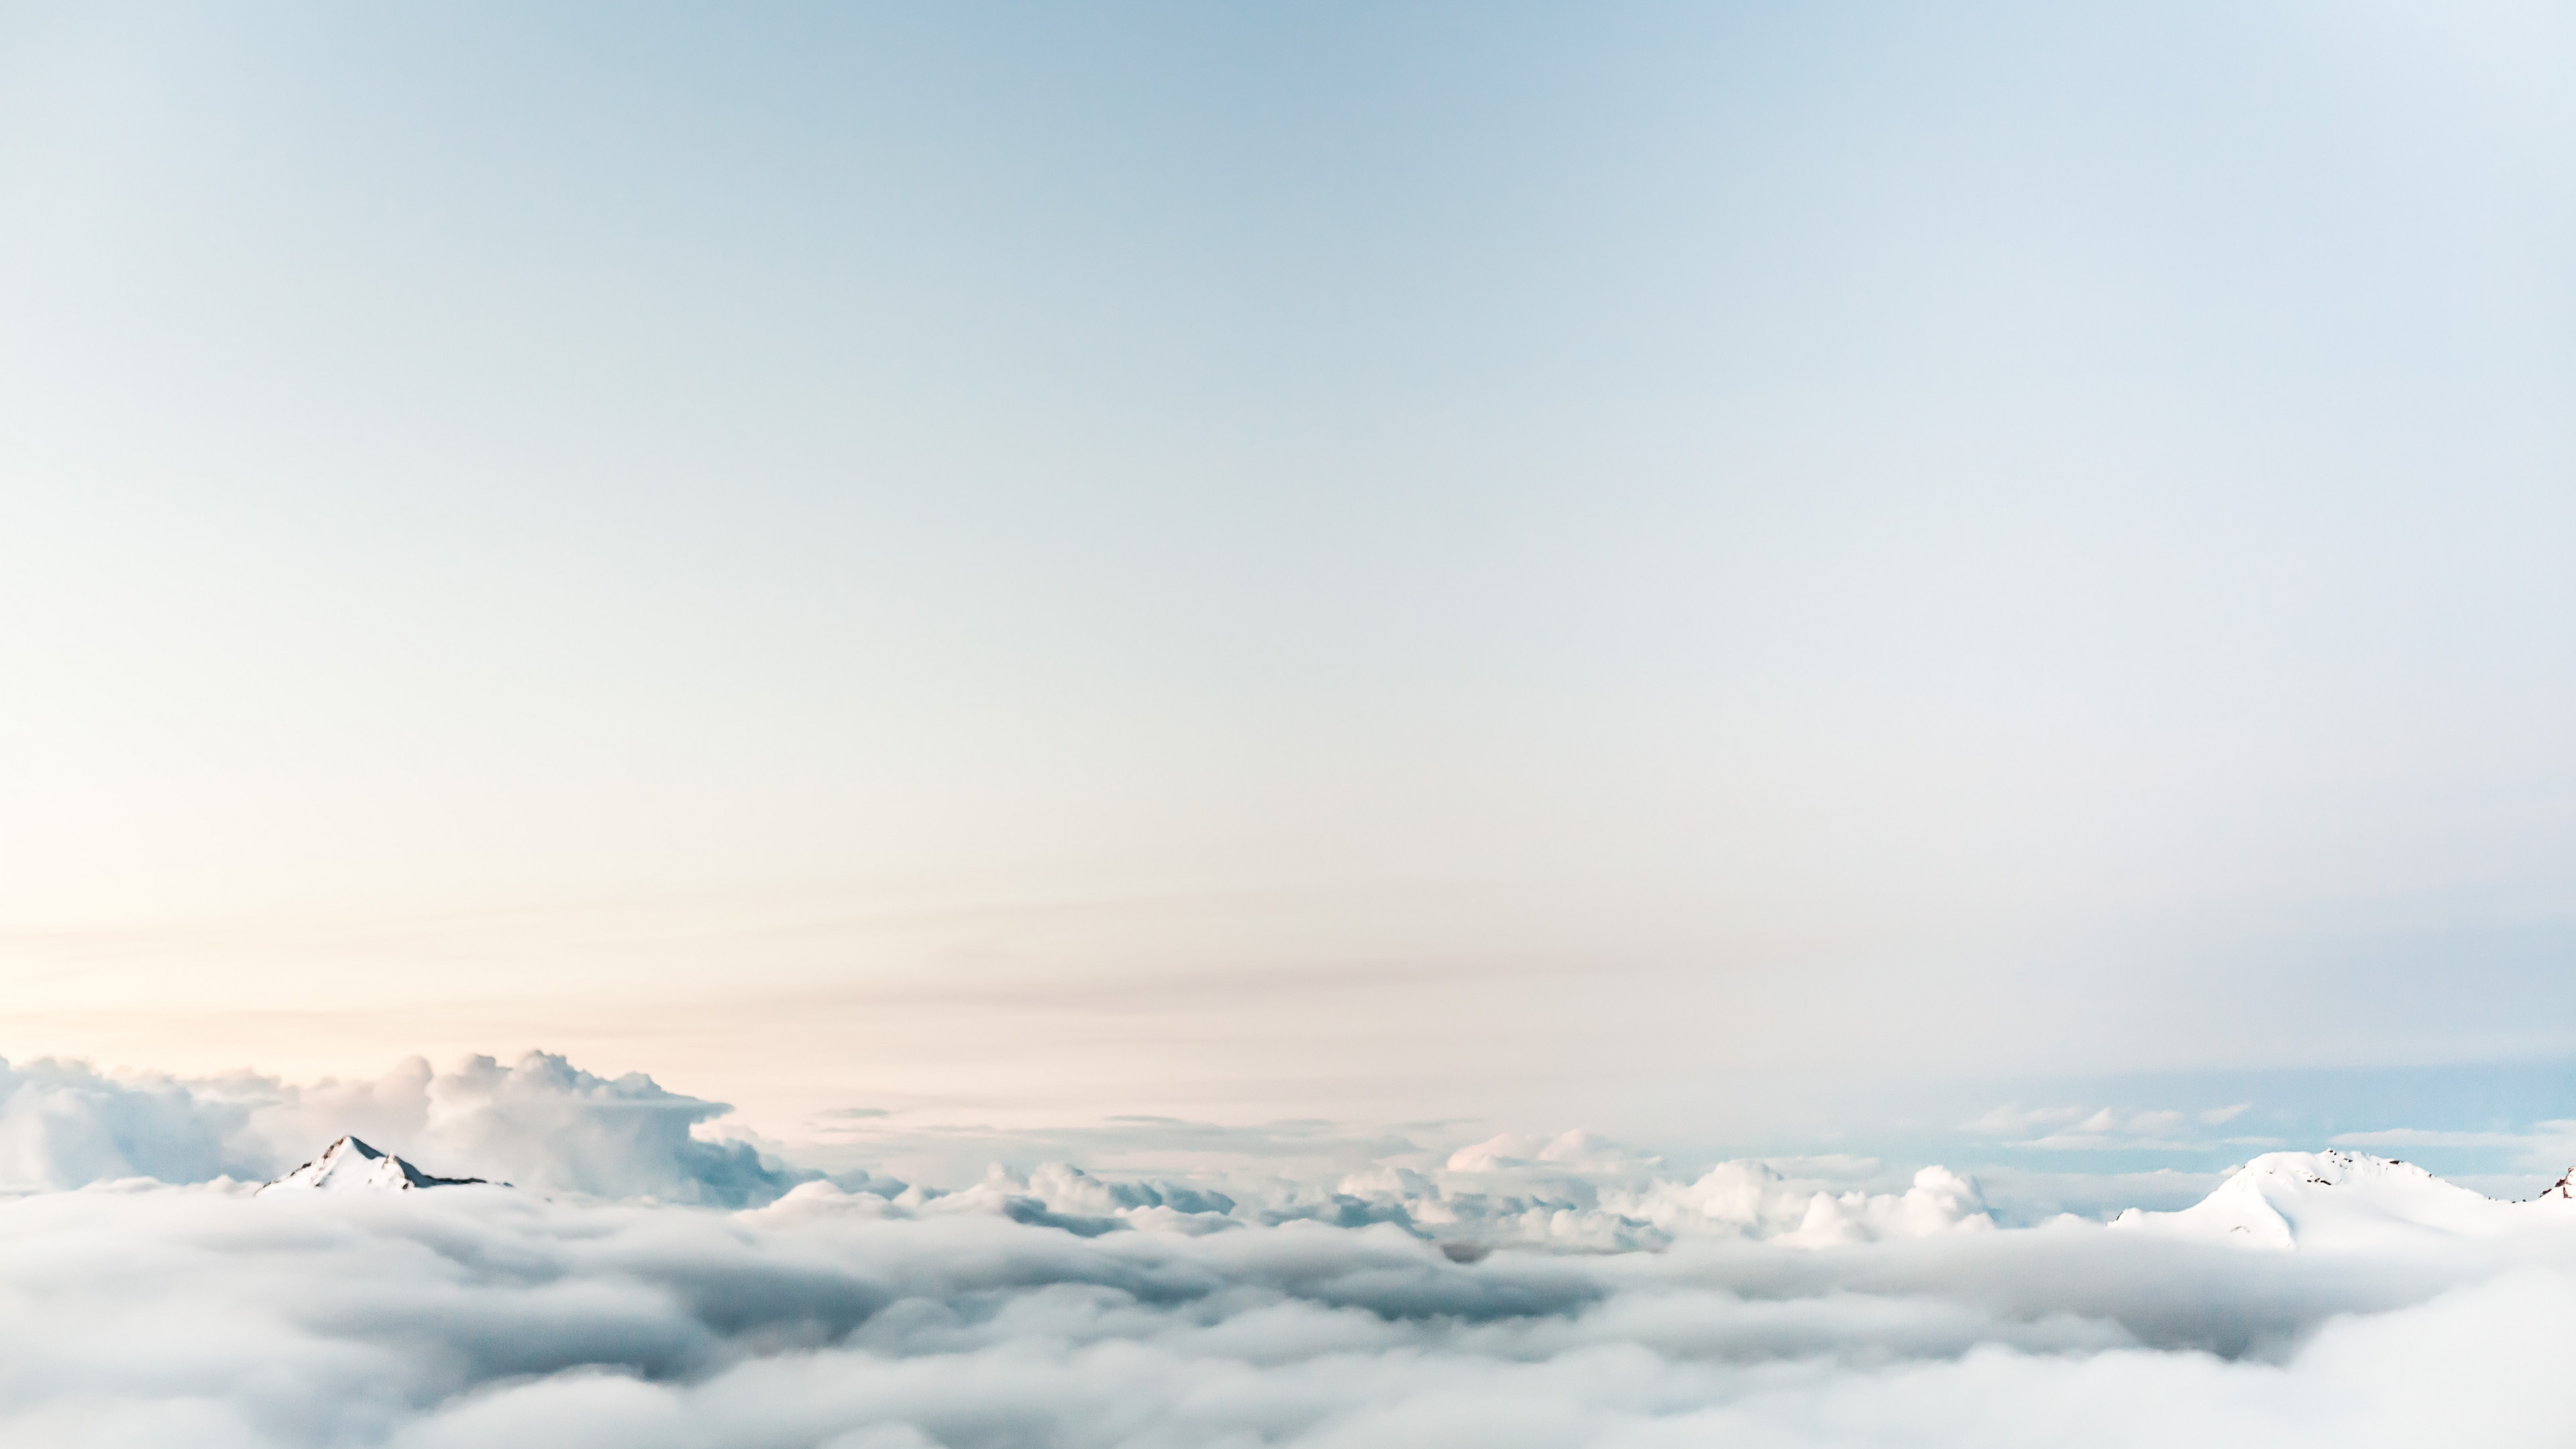 Floating on clouds wallpaper 3840x2160